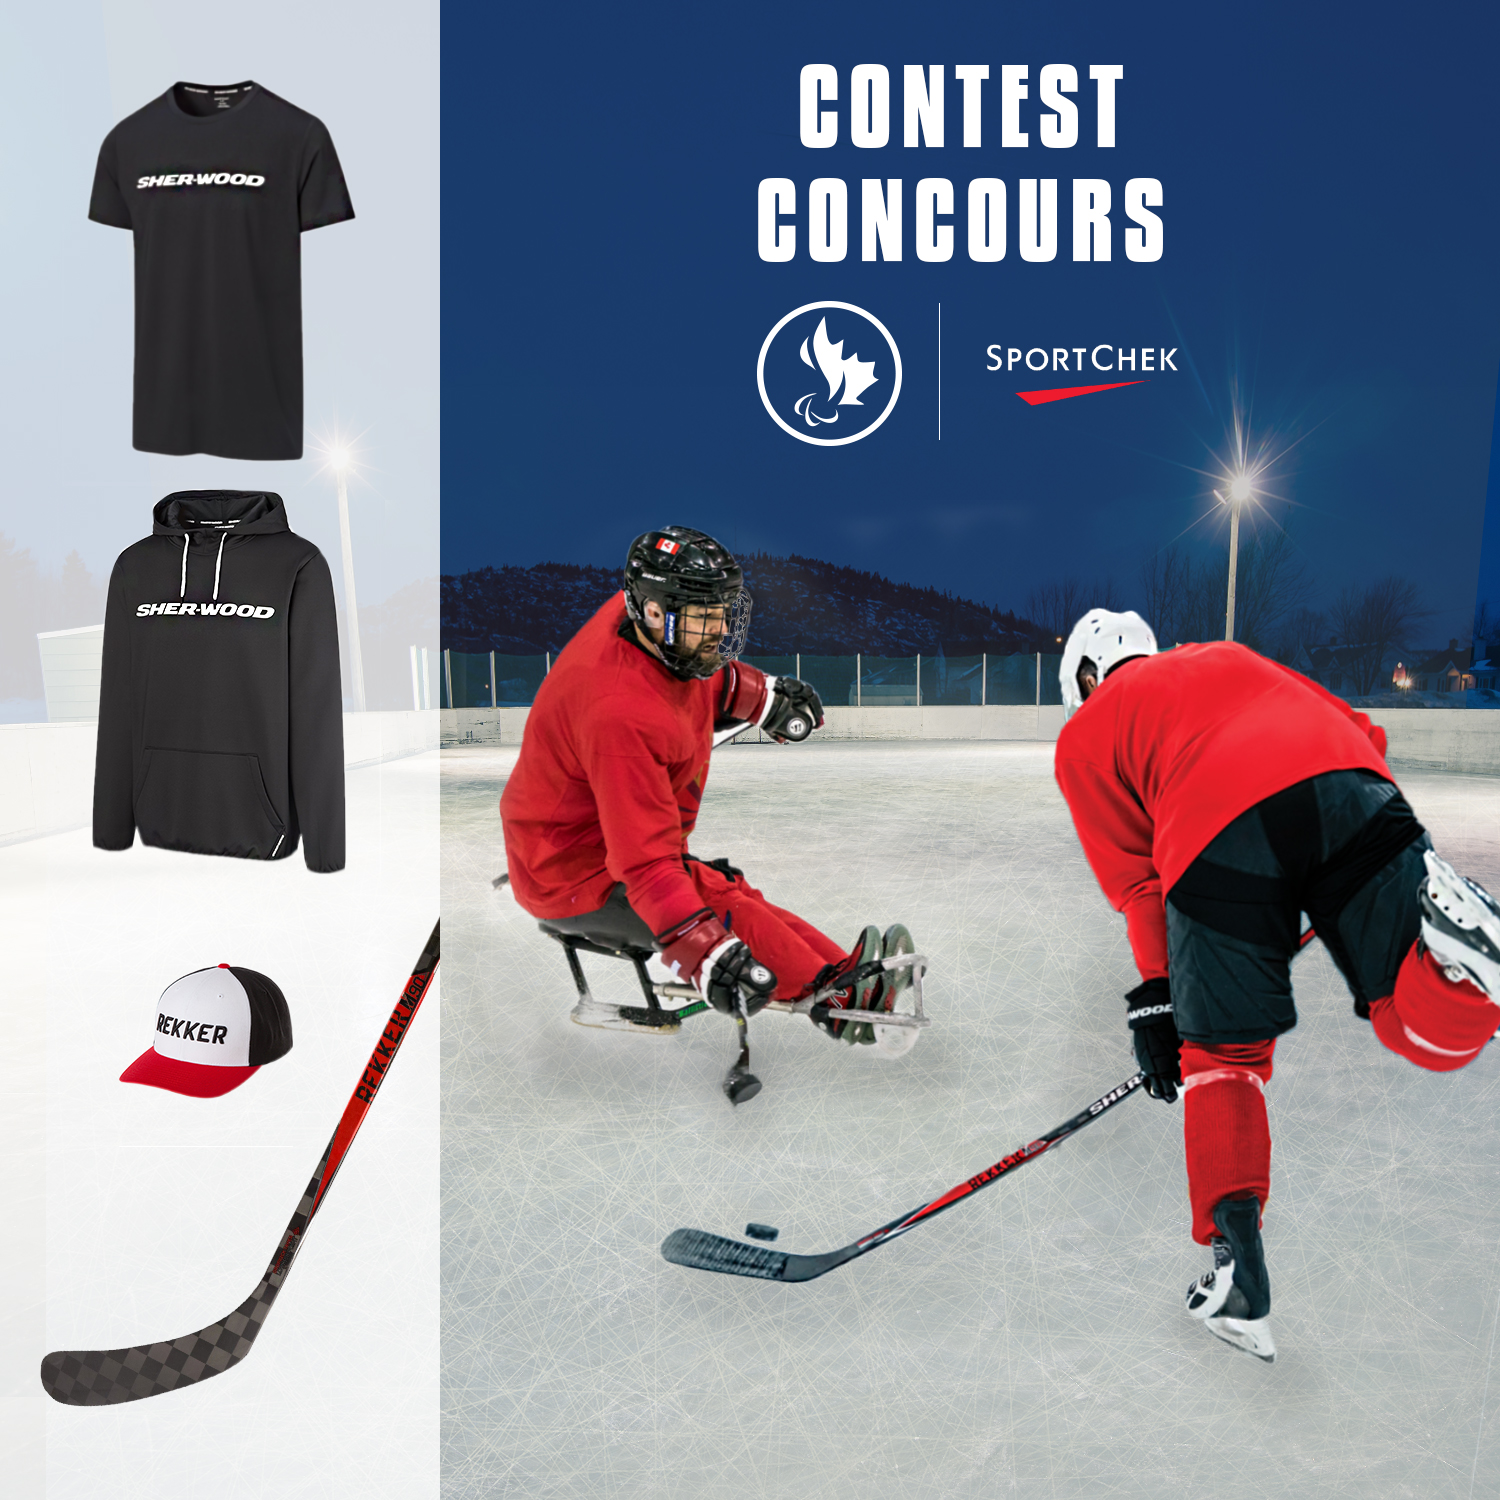 Para ice hockey player and stand up hockey player on the ice with the Sherwood tshirt, hoodie, hat, and hockey stick prizes